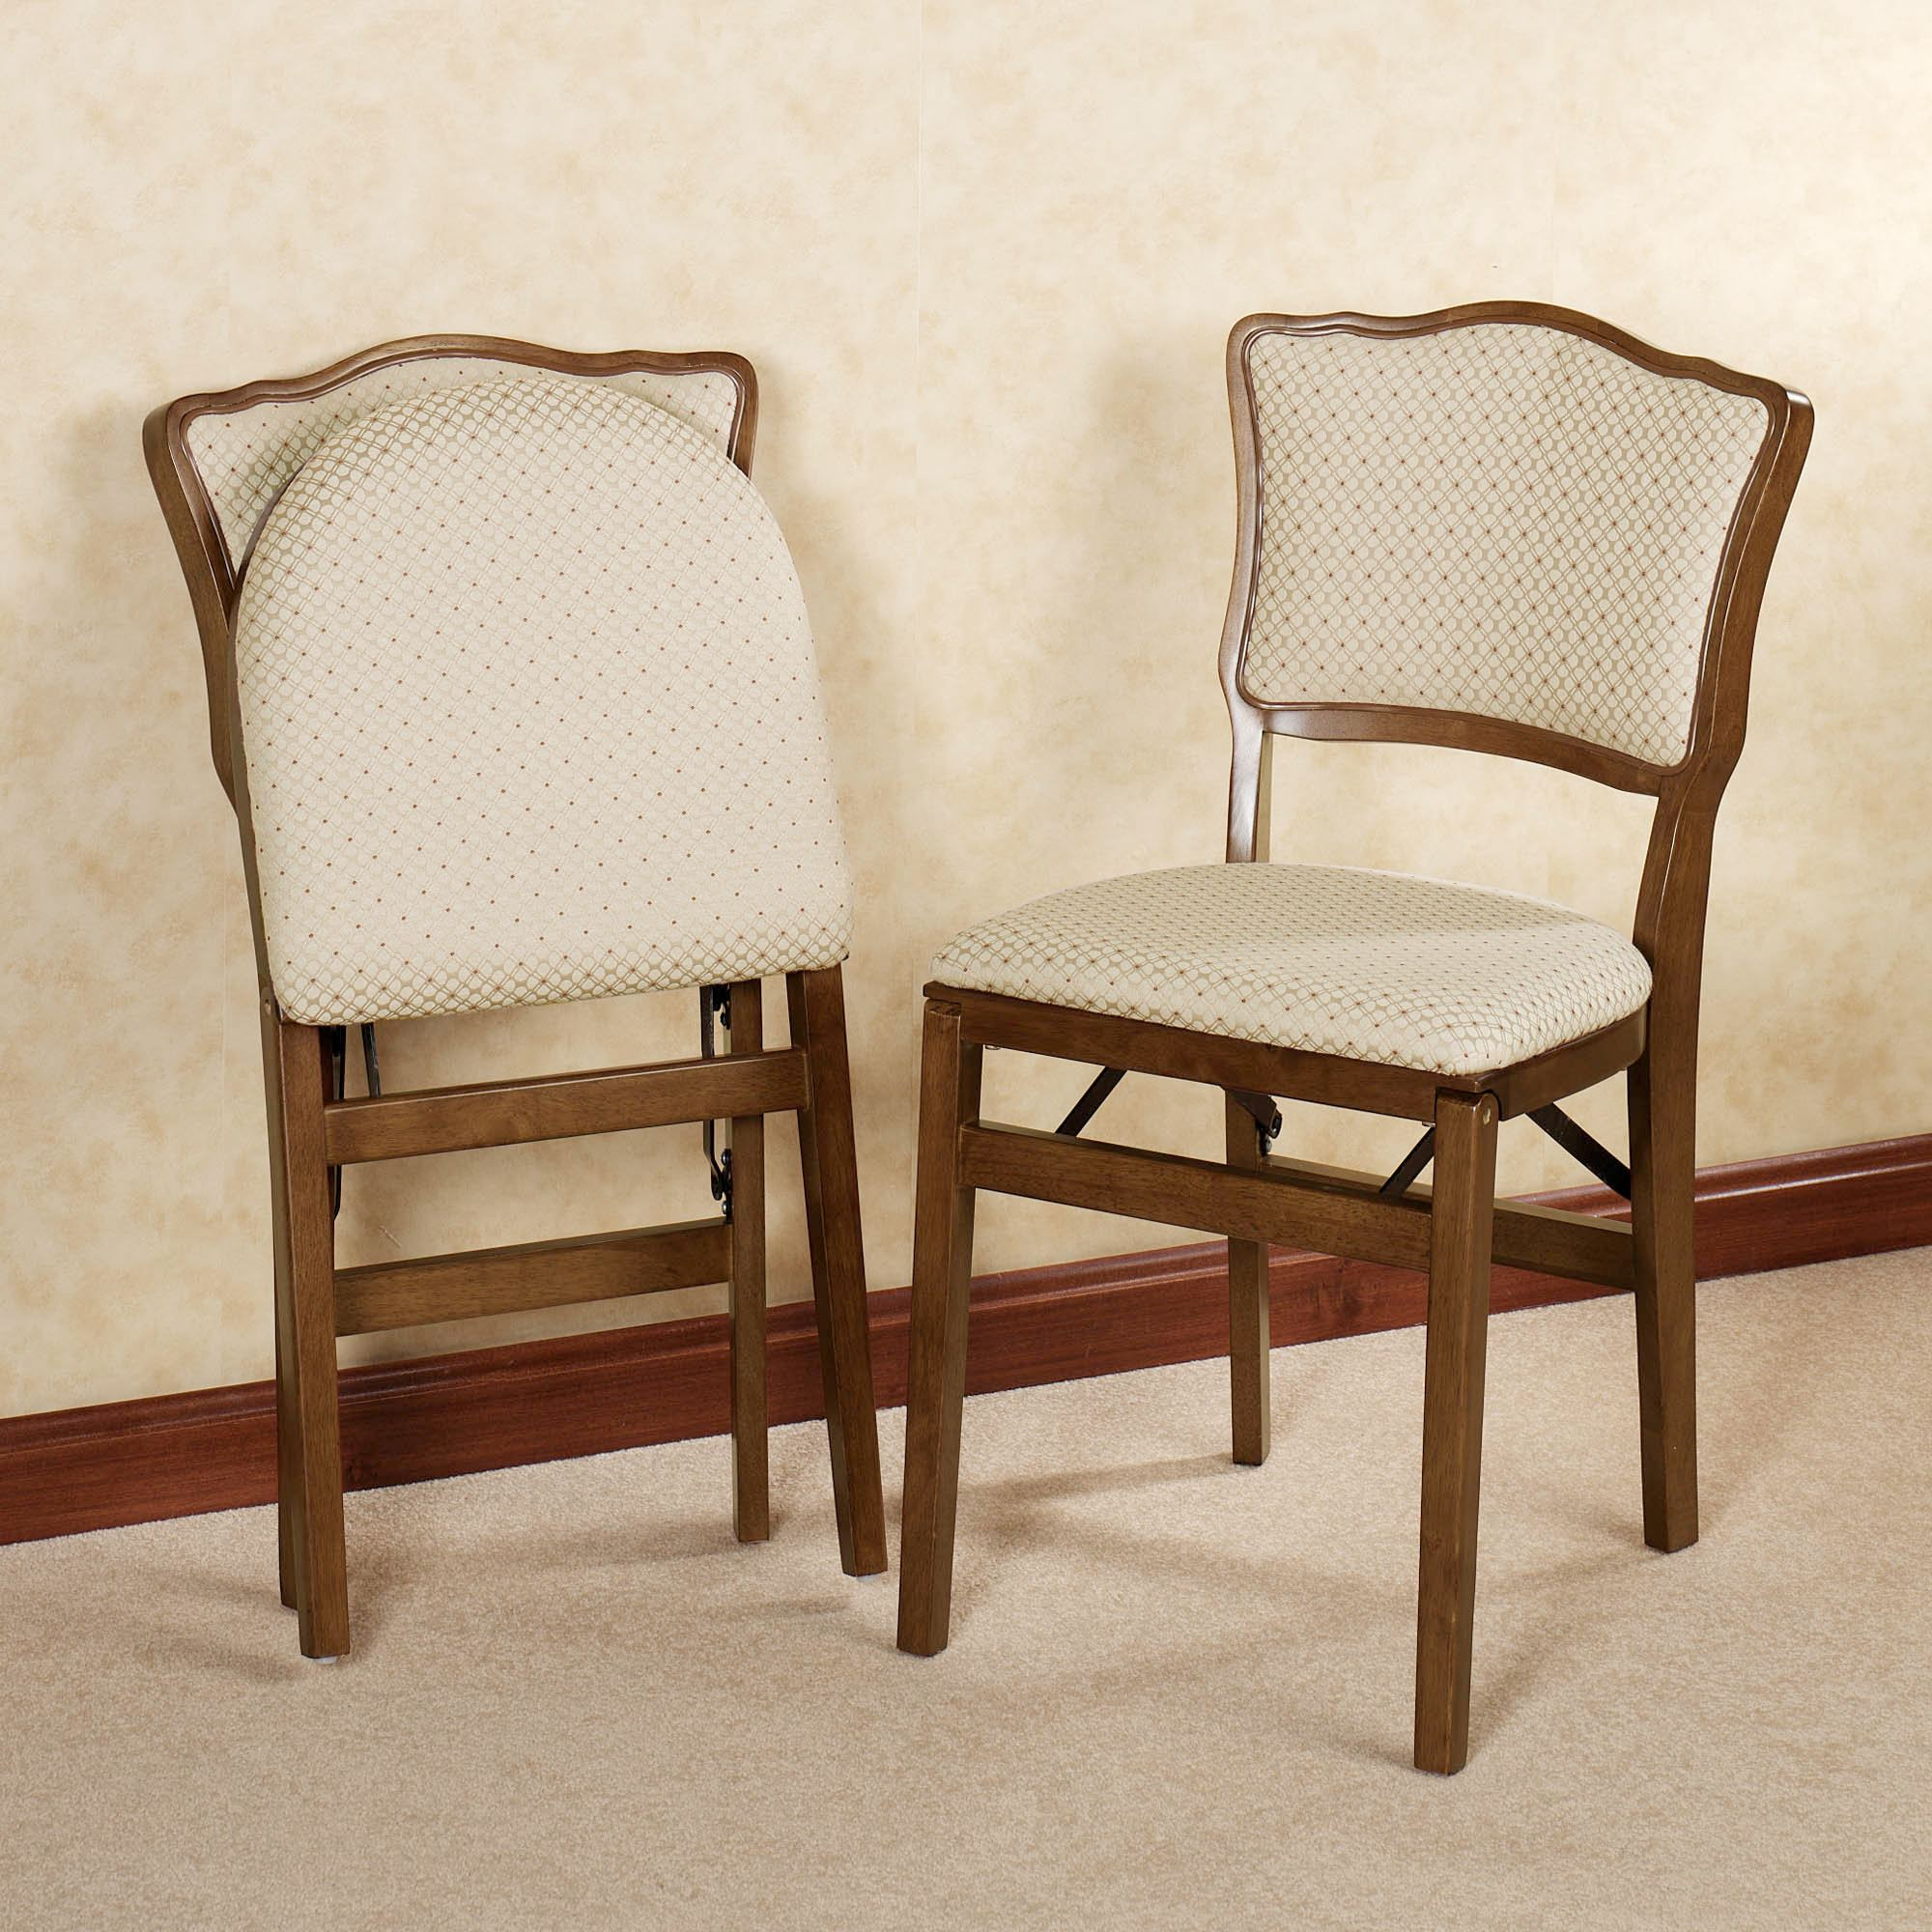 New upholstered folding chairs dover upholstered chair pair pair oddxayb